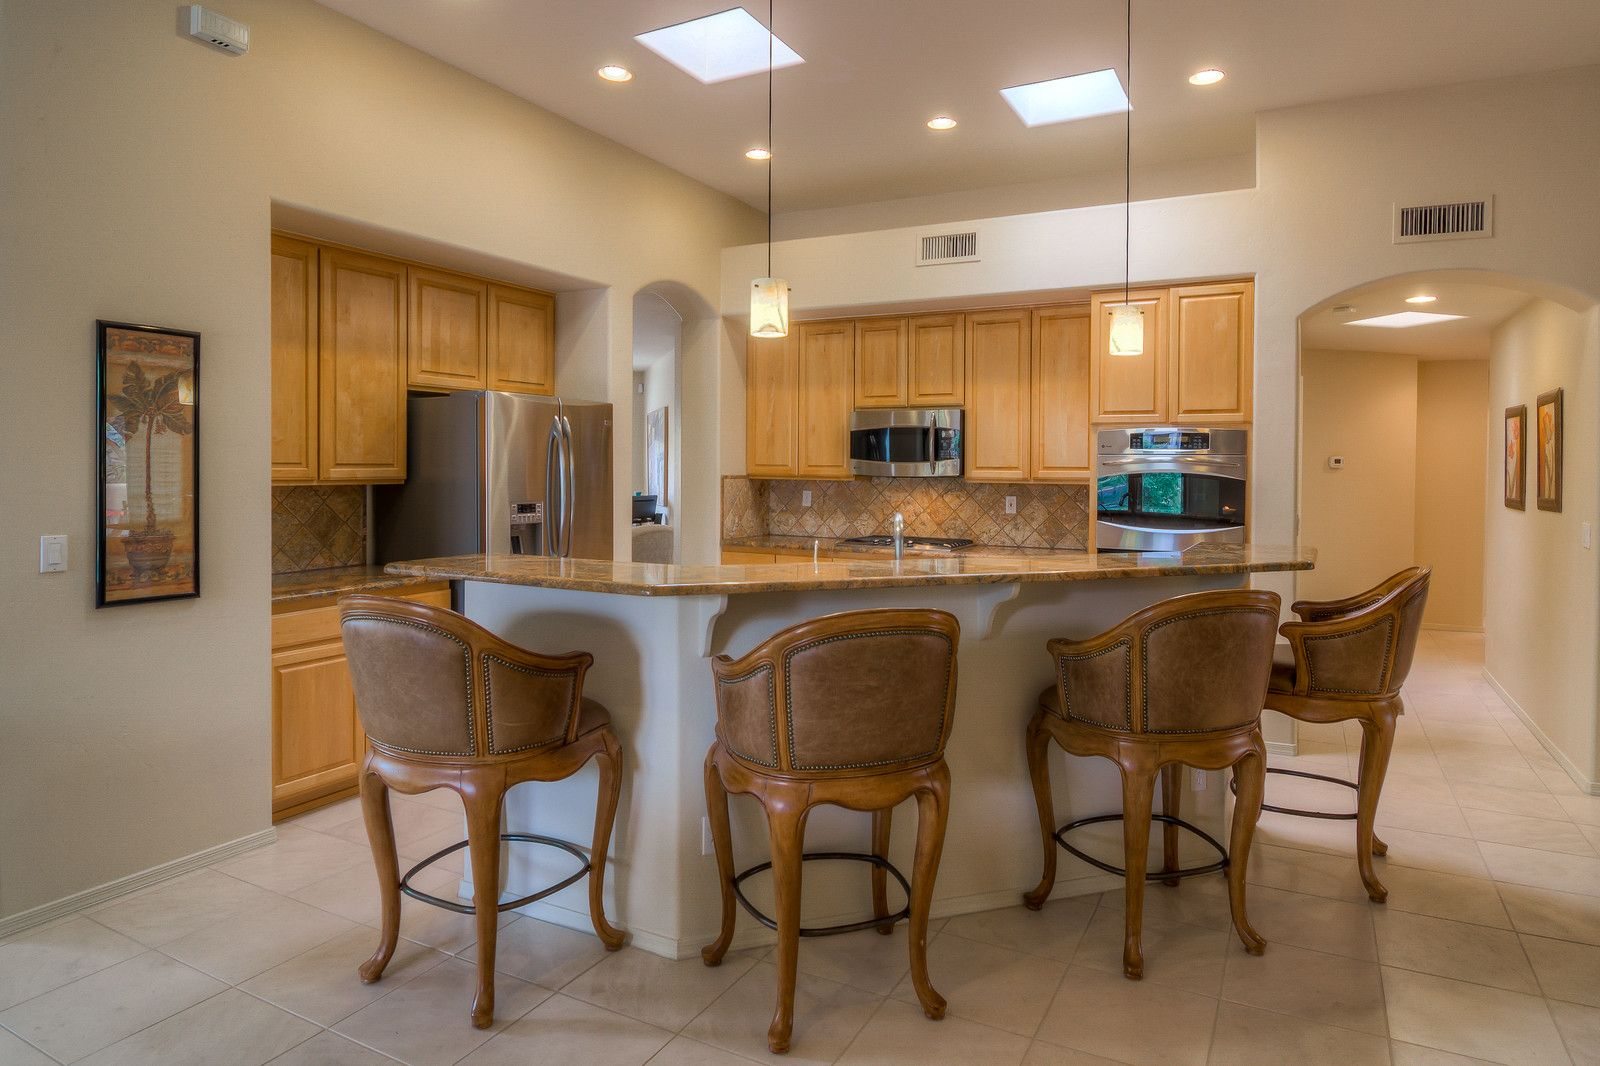 To learn more about this home for sale at n via elena tucson